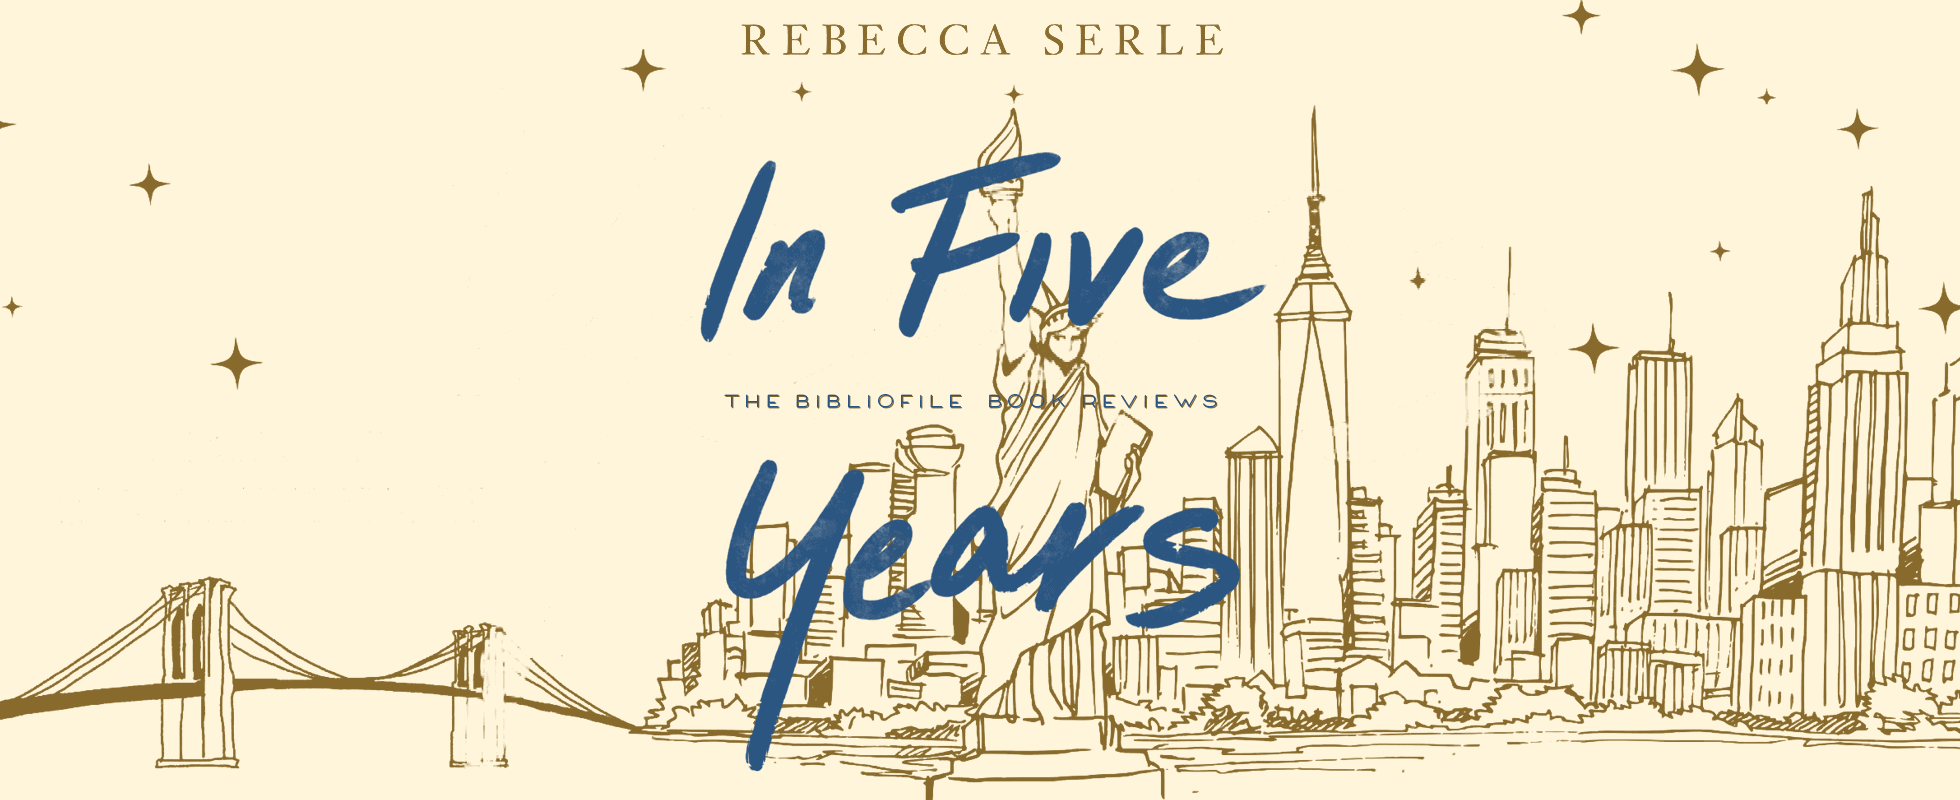 in five years rebecca serle book review plot summary synopsis spoilers ending